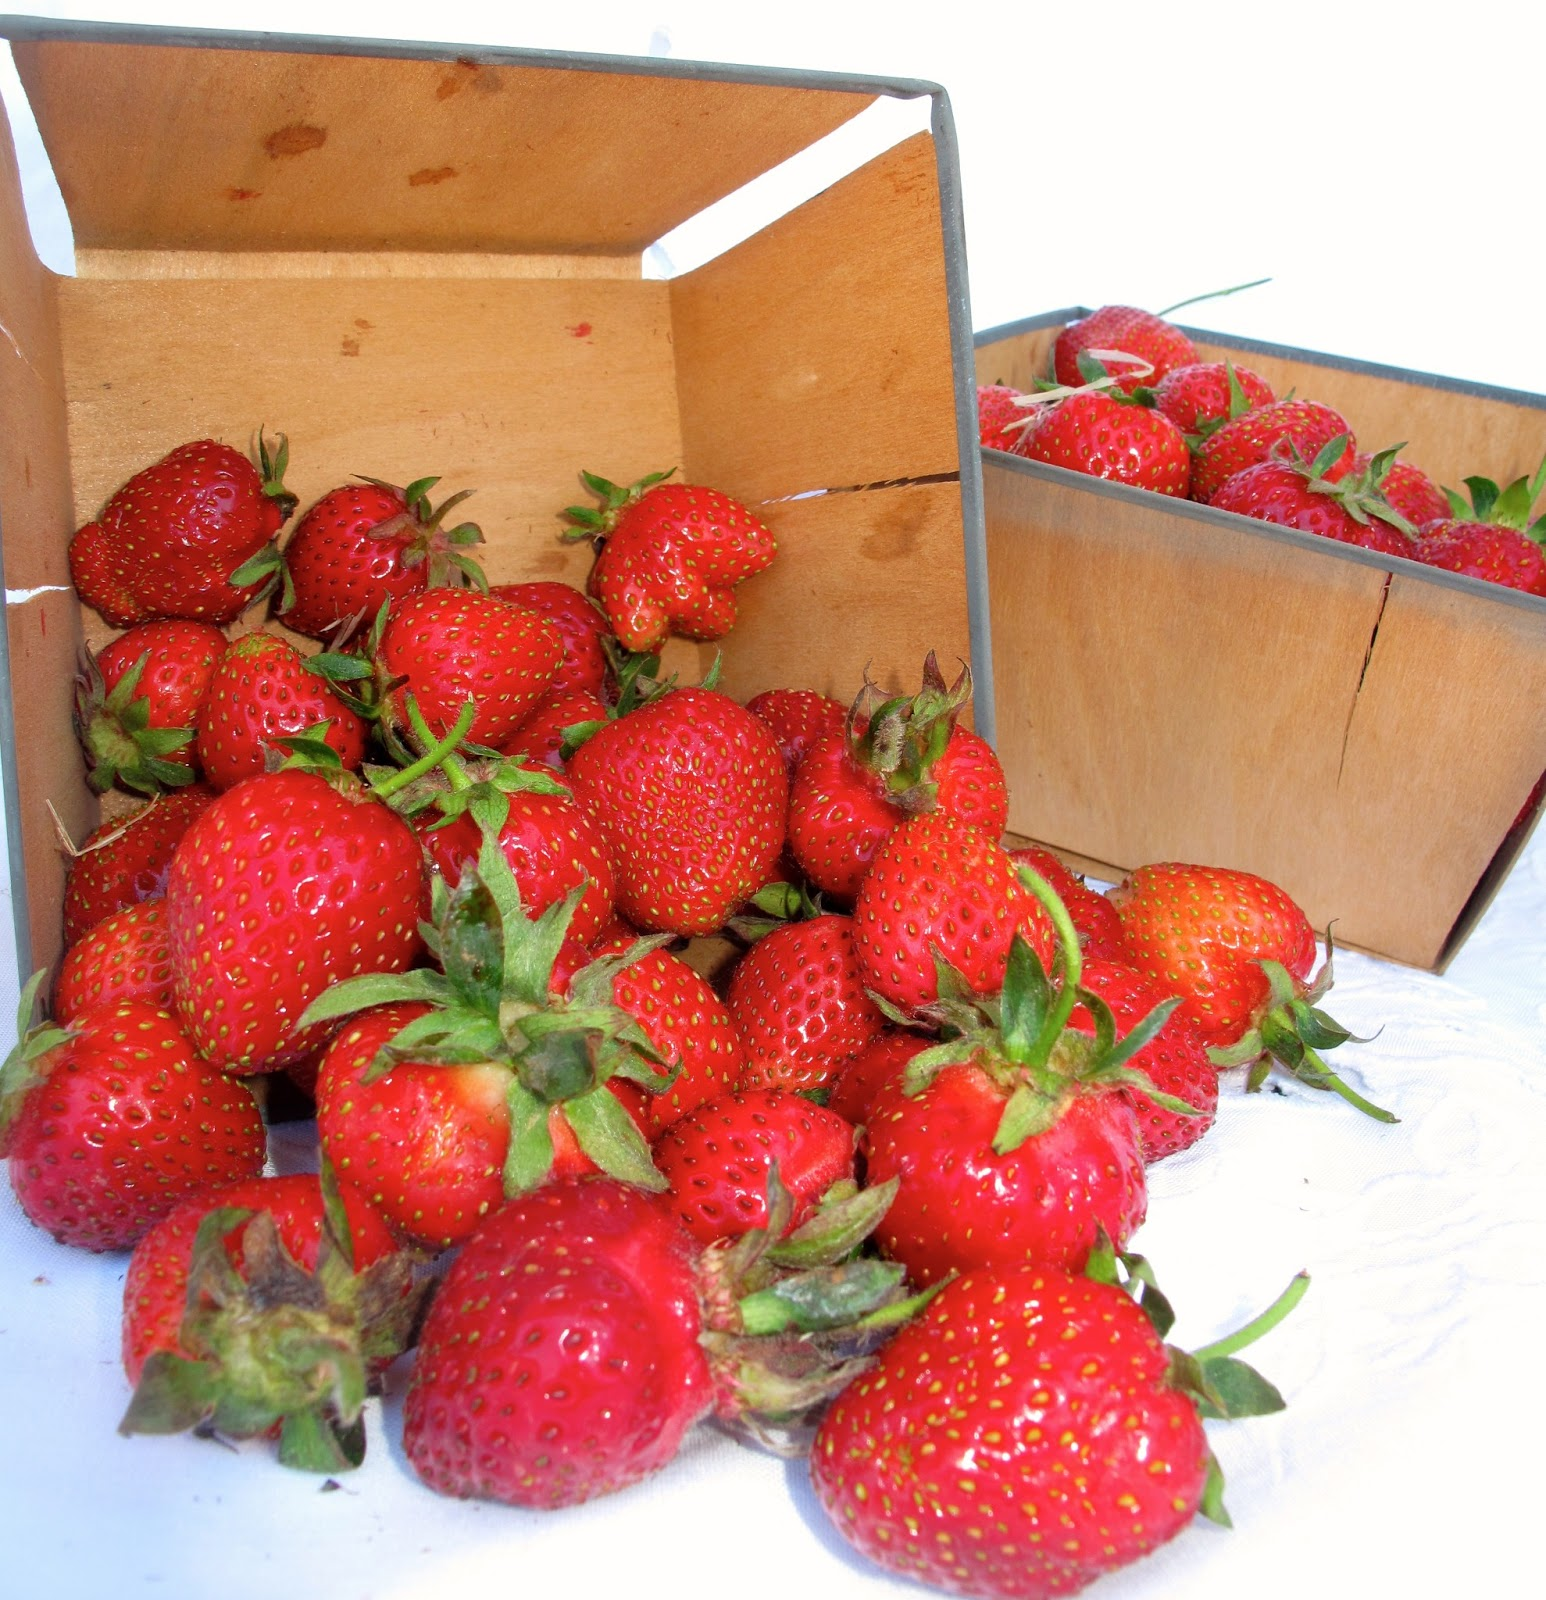 Cheerful Thrifty Door: Steel Rimmed Strawberry Baskets and ...